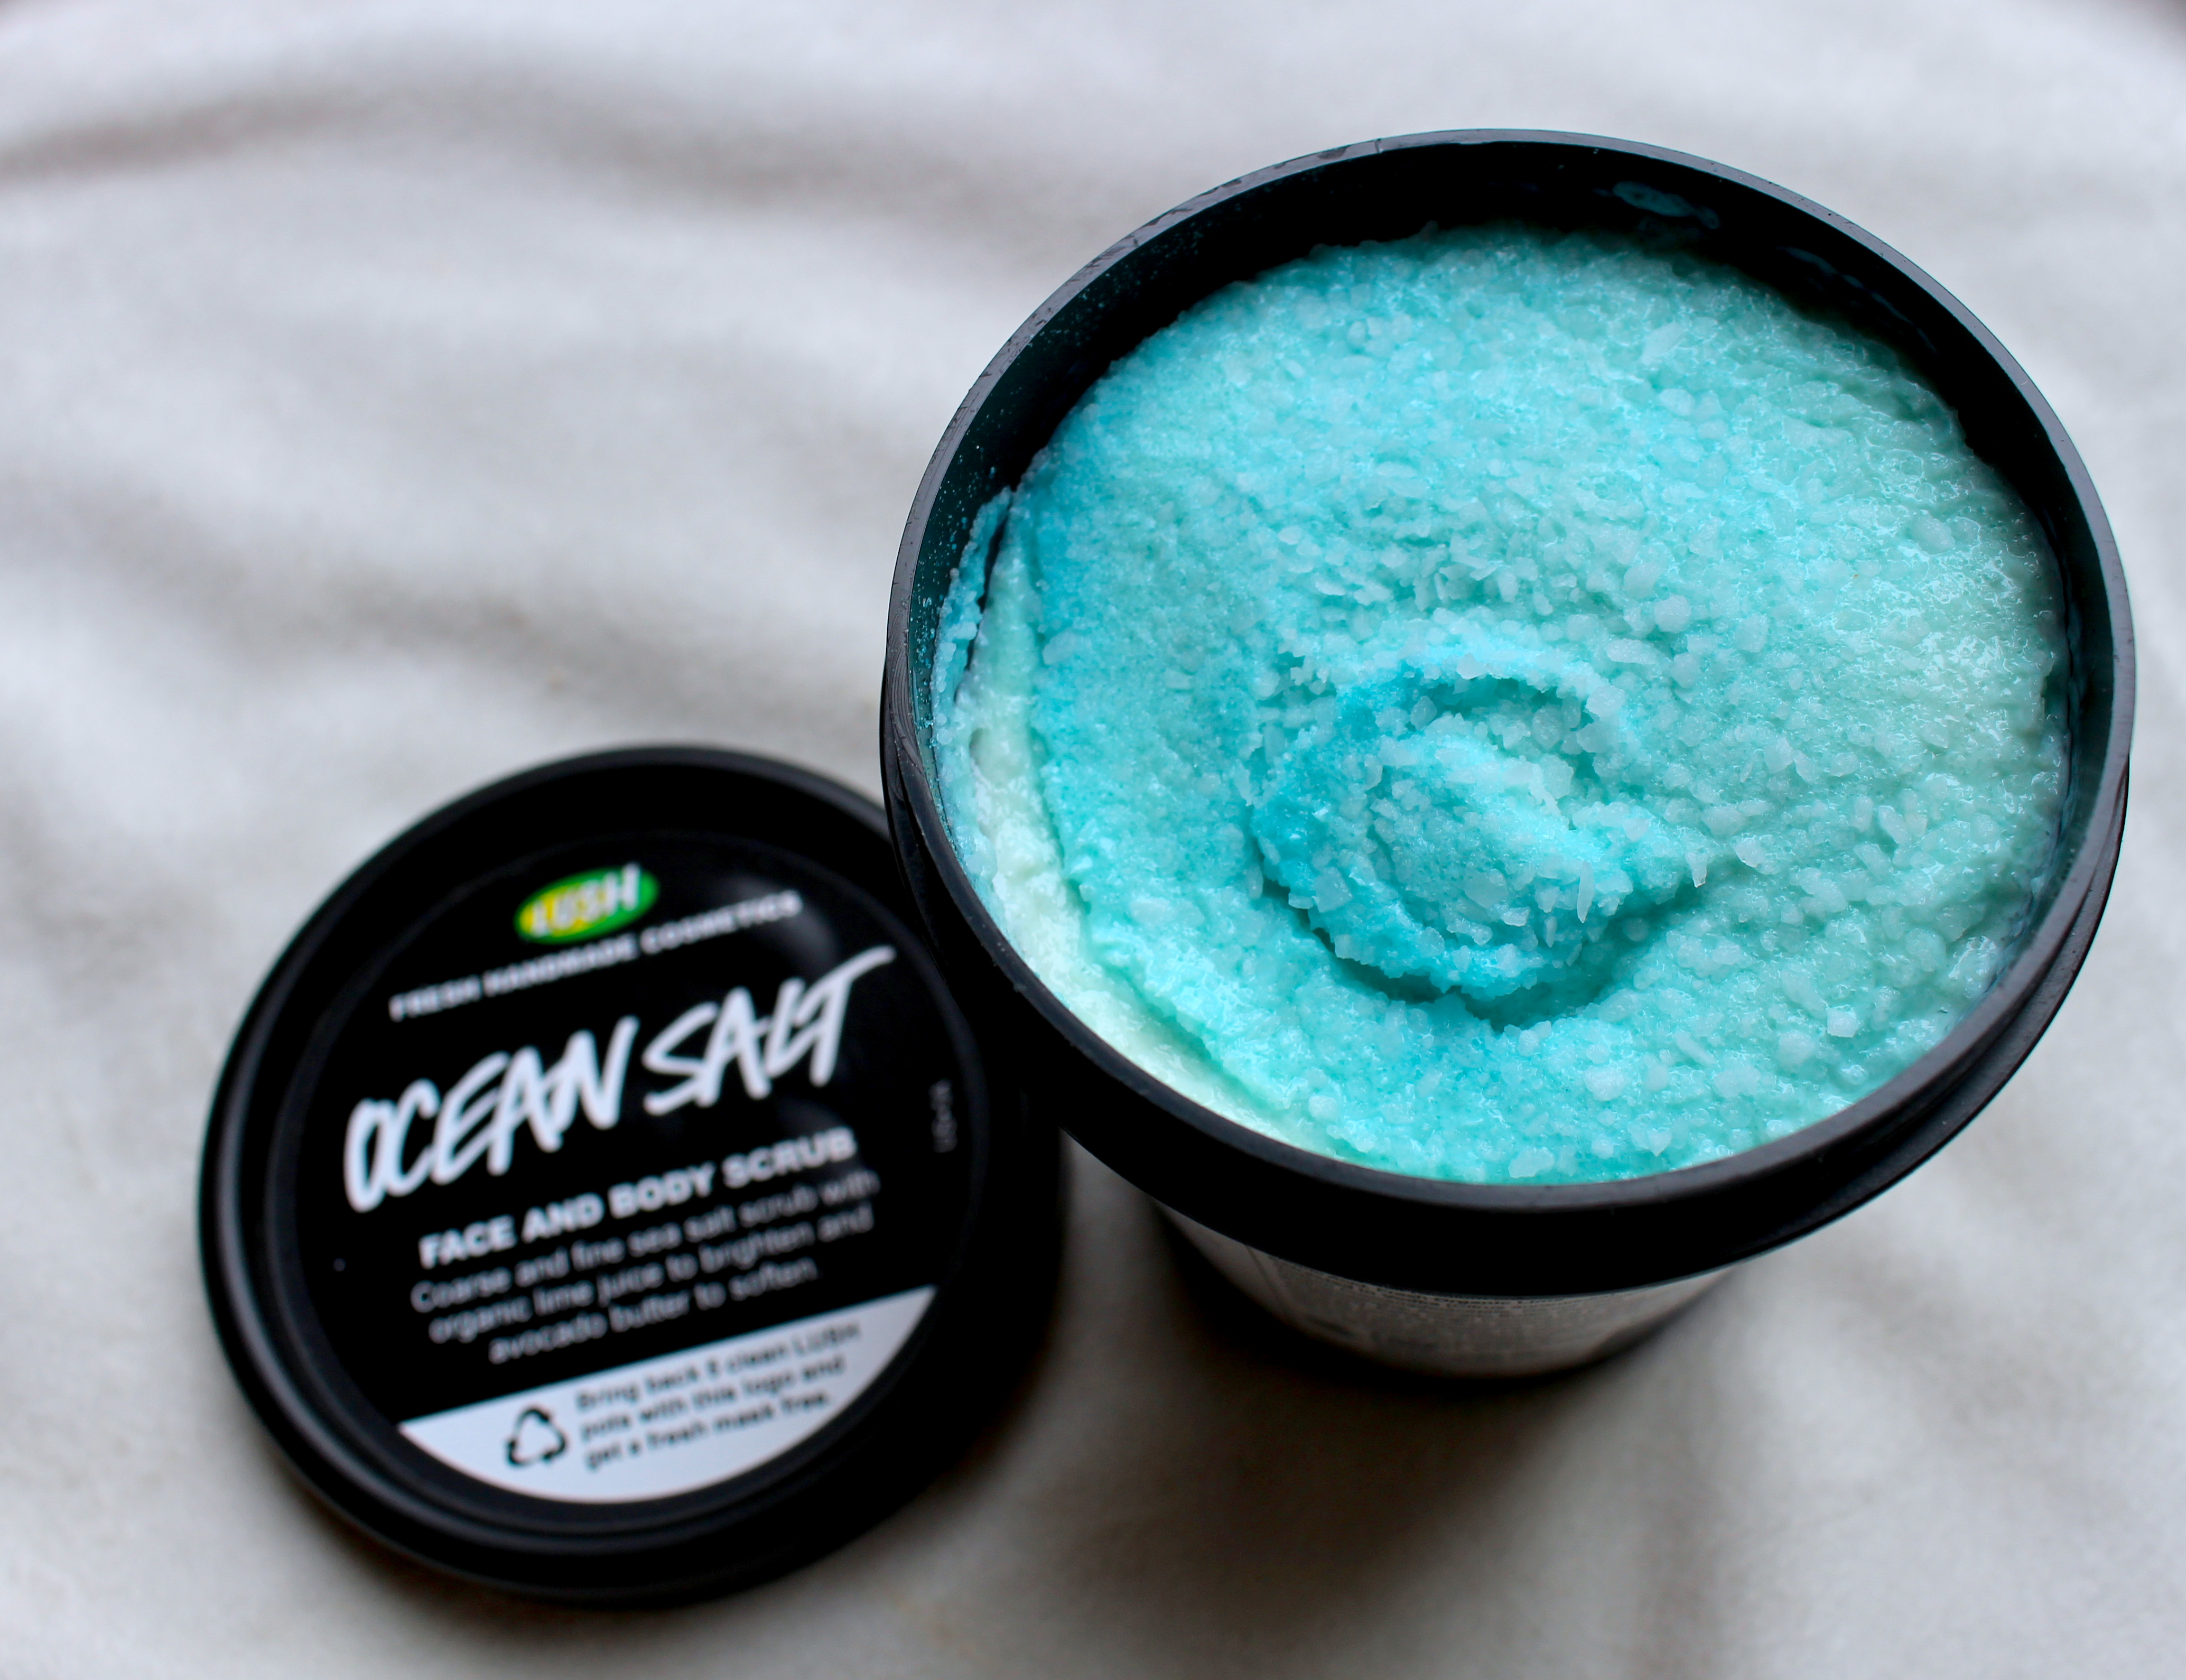 Best of Lush: What Should I Buy From Lush? 27 Lush ...